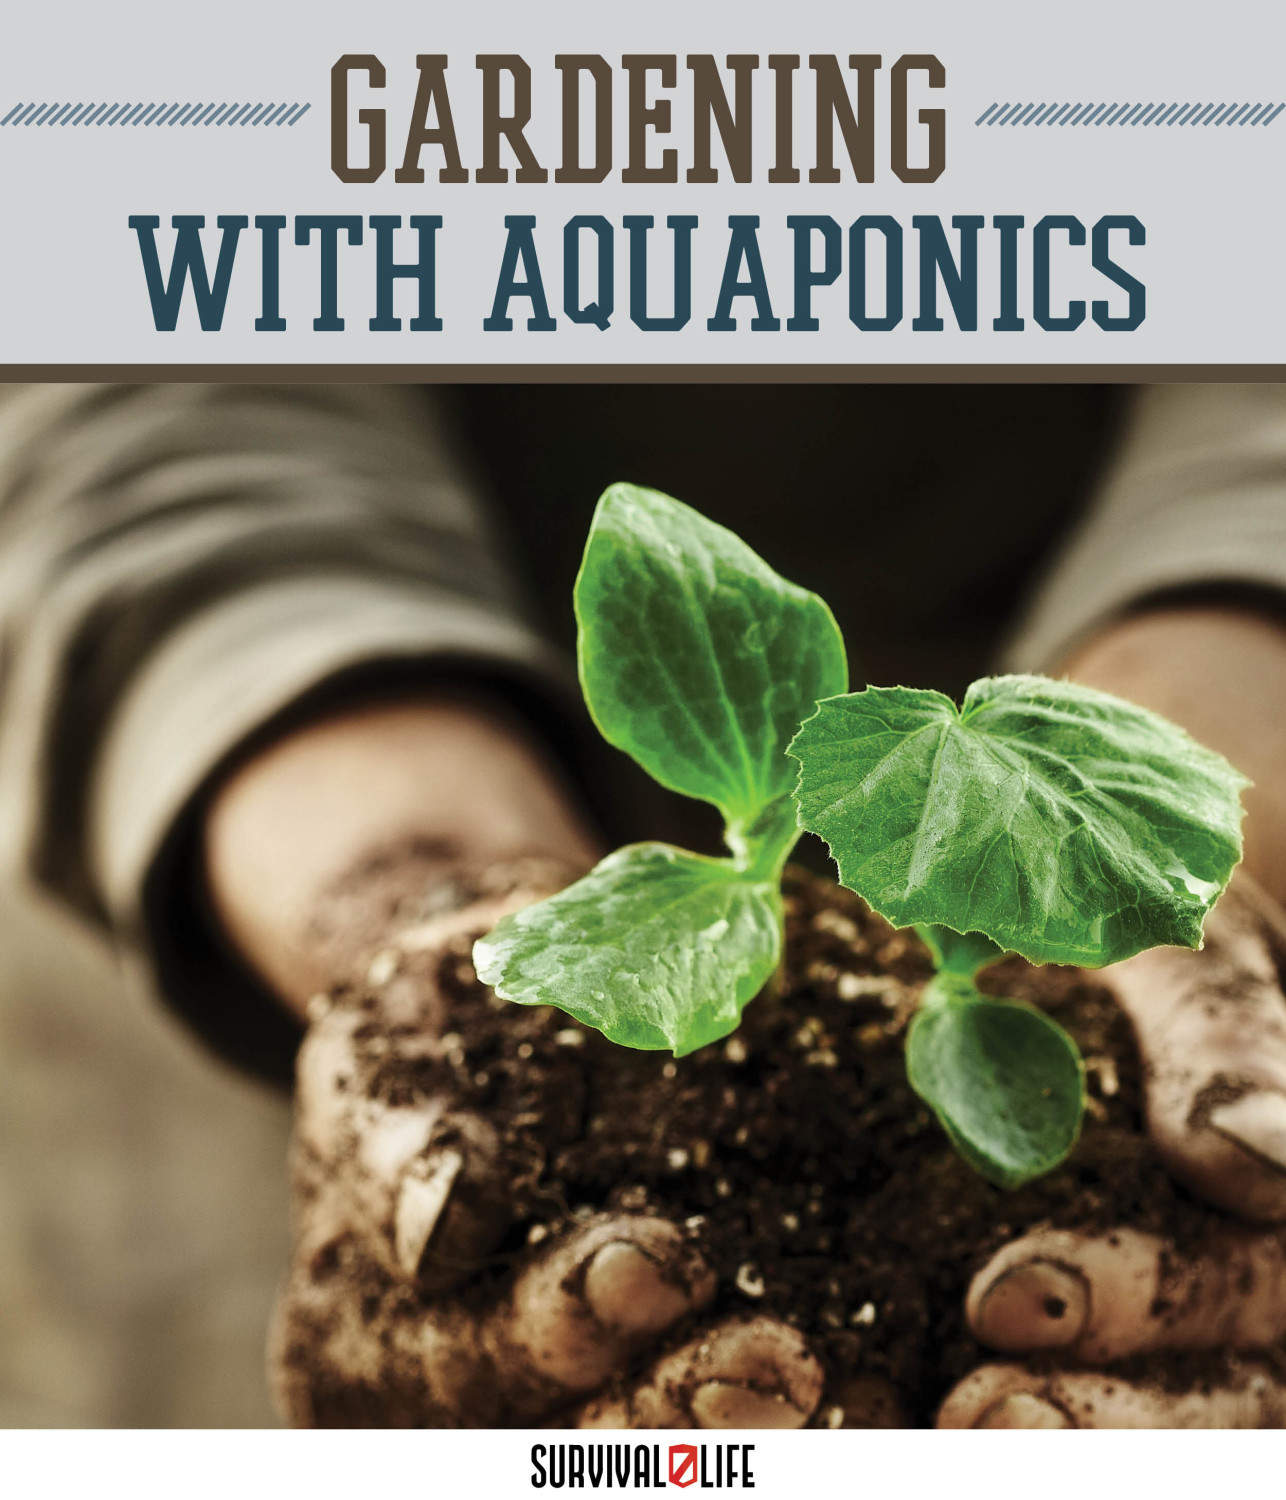 Make A (Nearly) Self-Sufficient Indoor Garden With Aquaponics by Survival Life at http://survivallife.staging.wpengine.com/2015/04/30/aquaponics-indoor-garden/